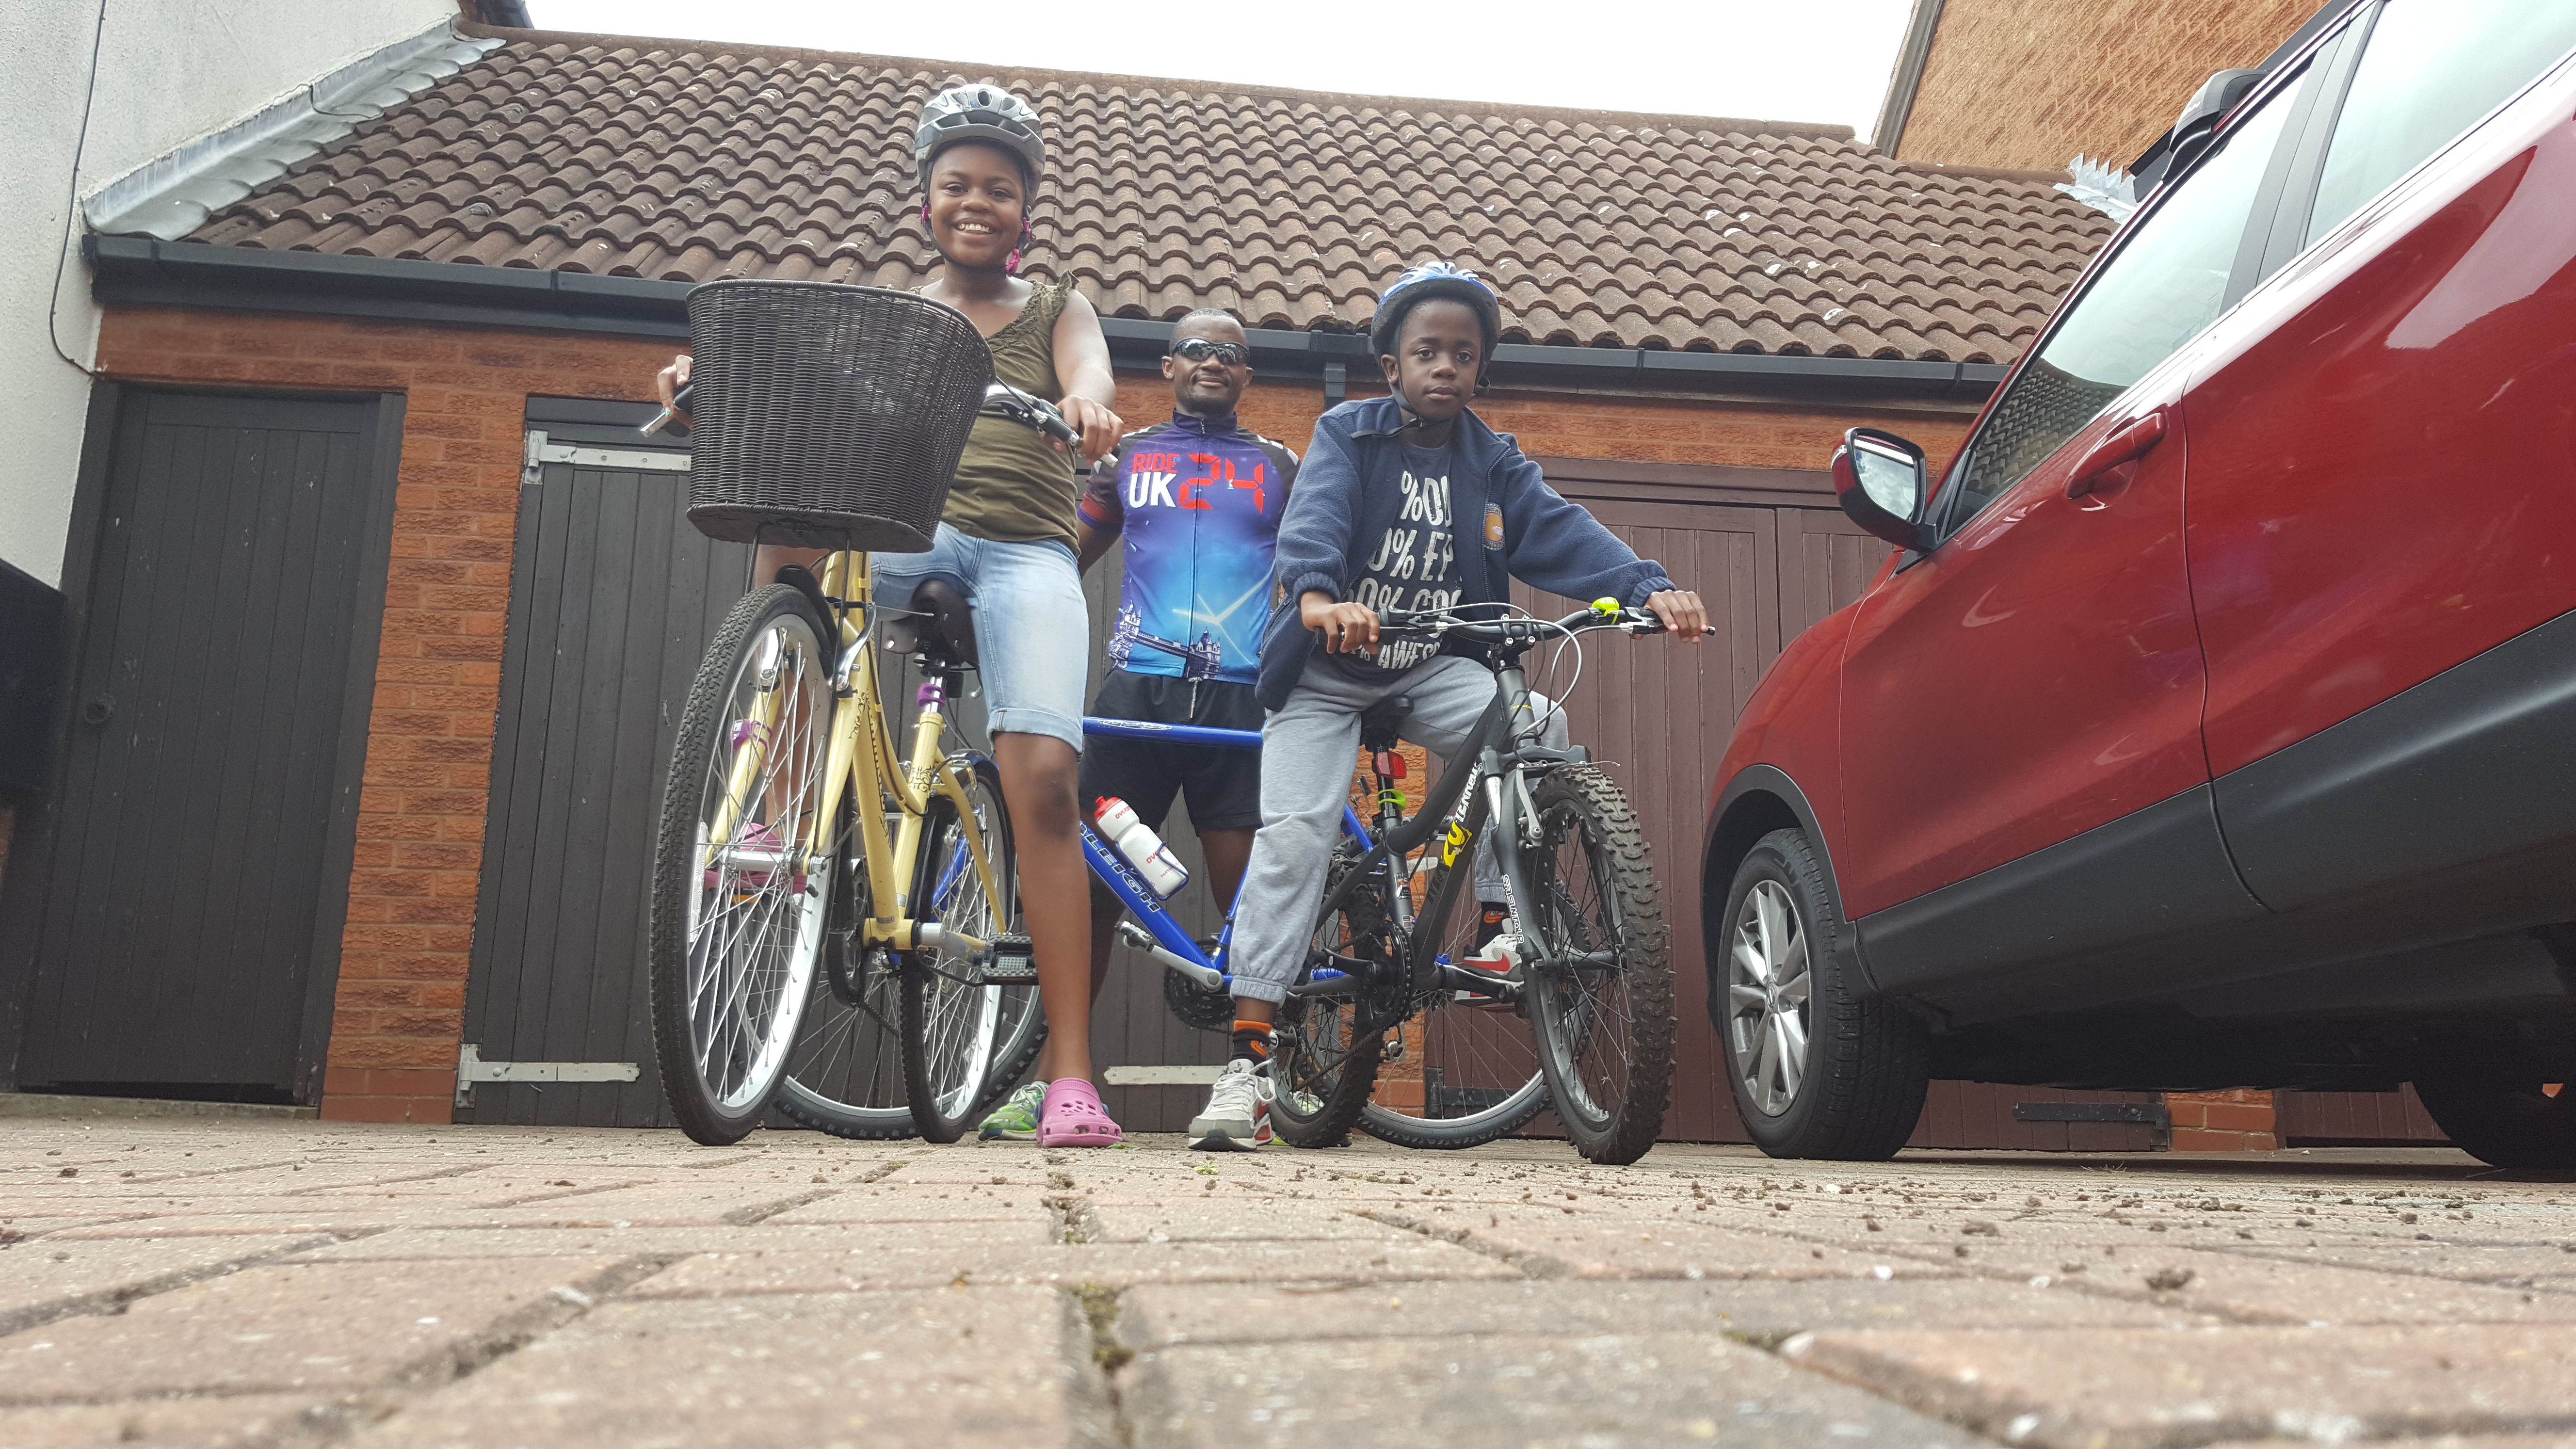 My longest mountain bike ride, to date, with the children 28 Aug 16